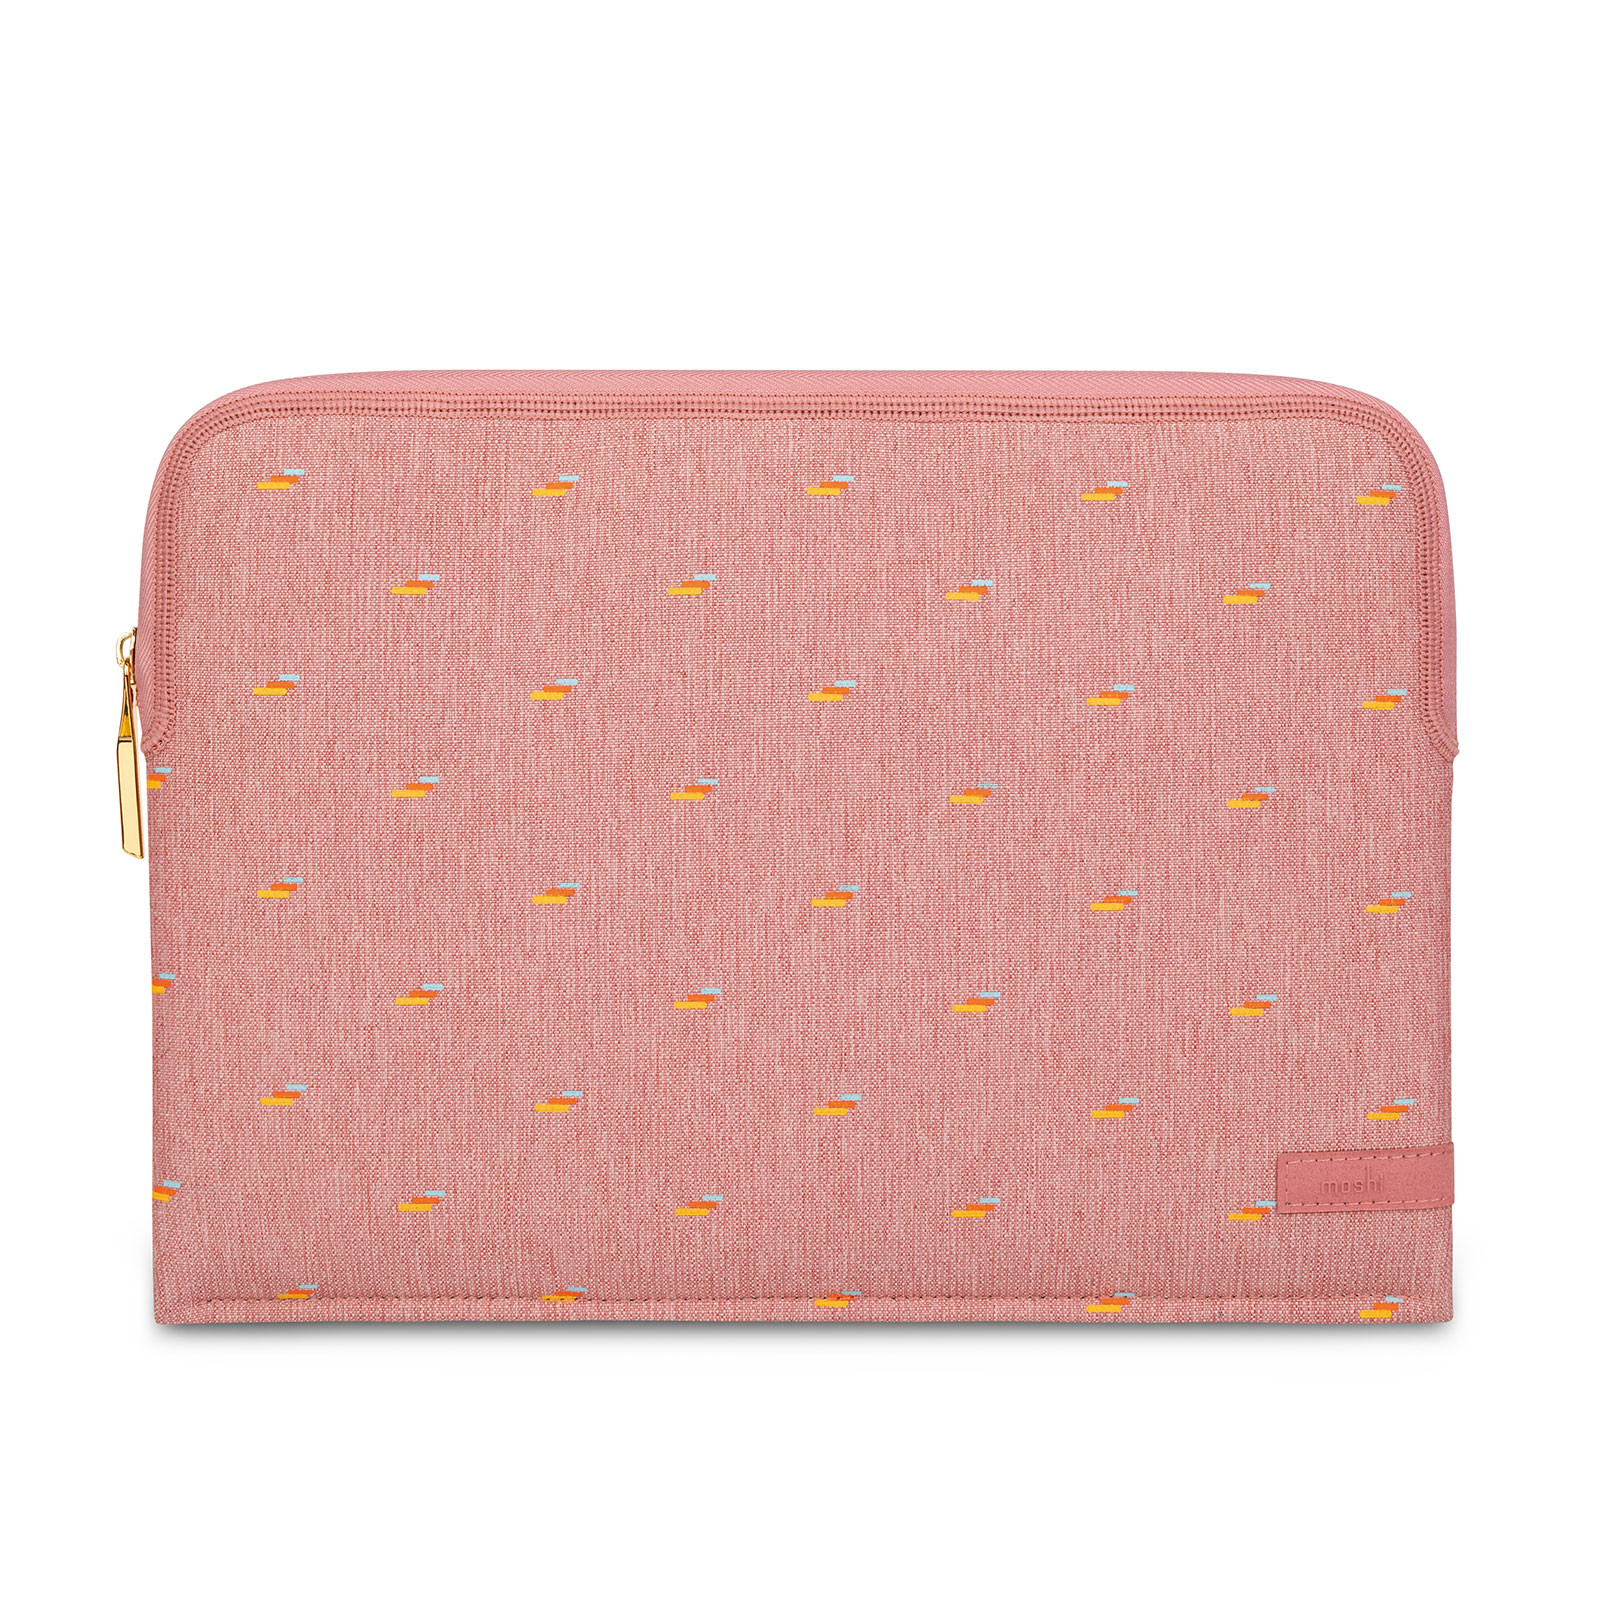 "Moshi Pluma 13"" MacBook Pro (USB-C) Sleeve"